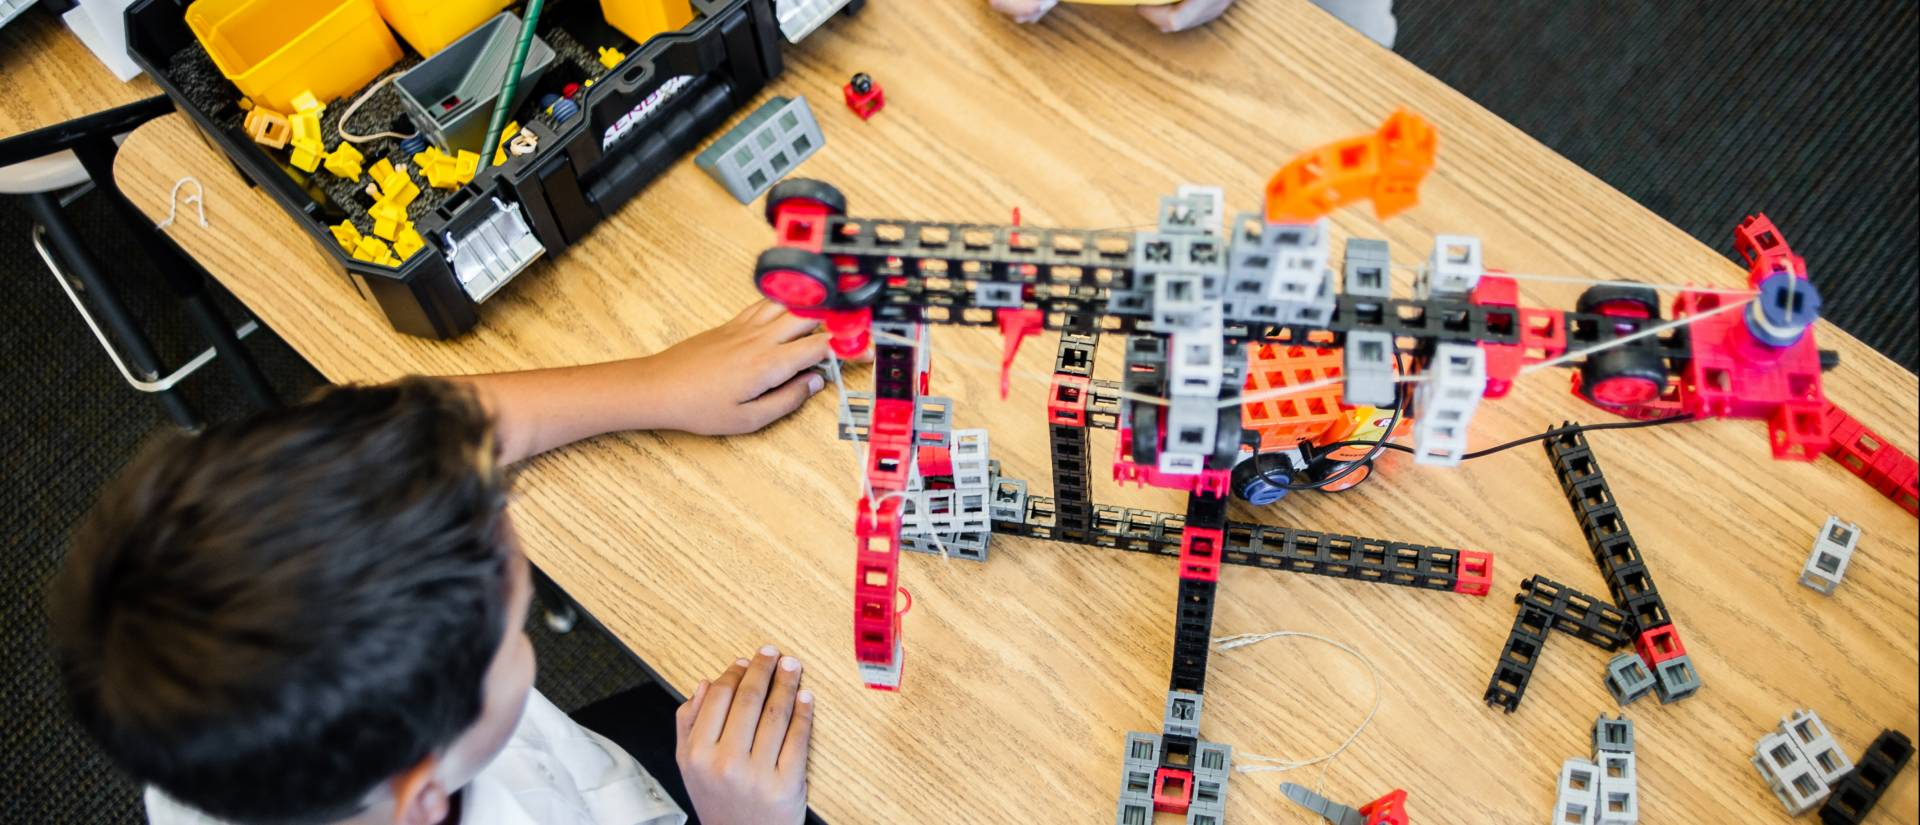 Stem Education Programs Kits And Resources Kids